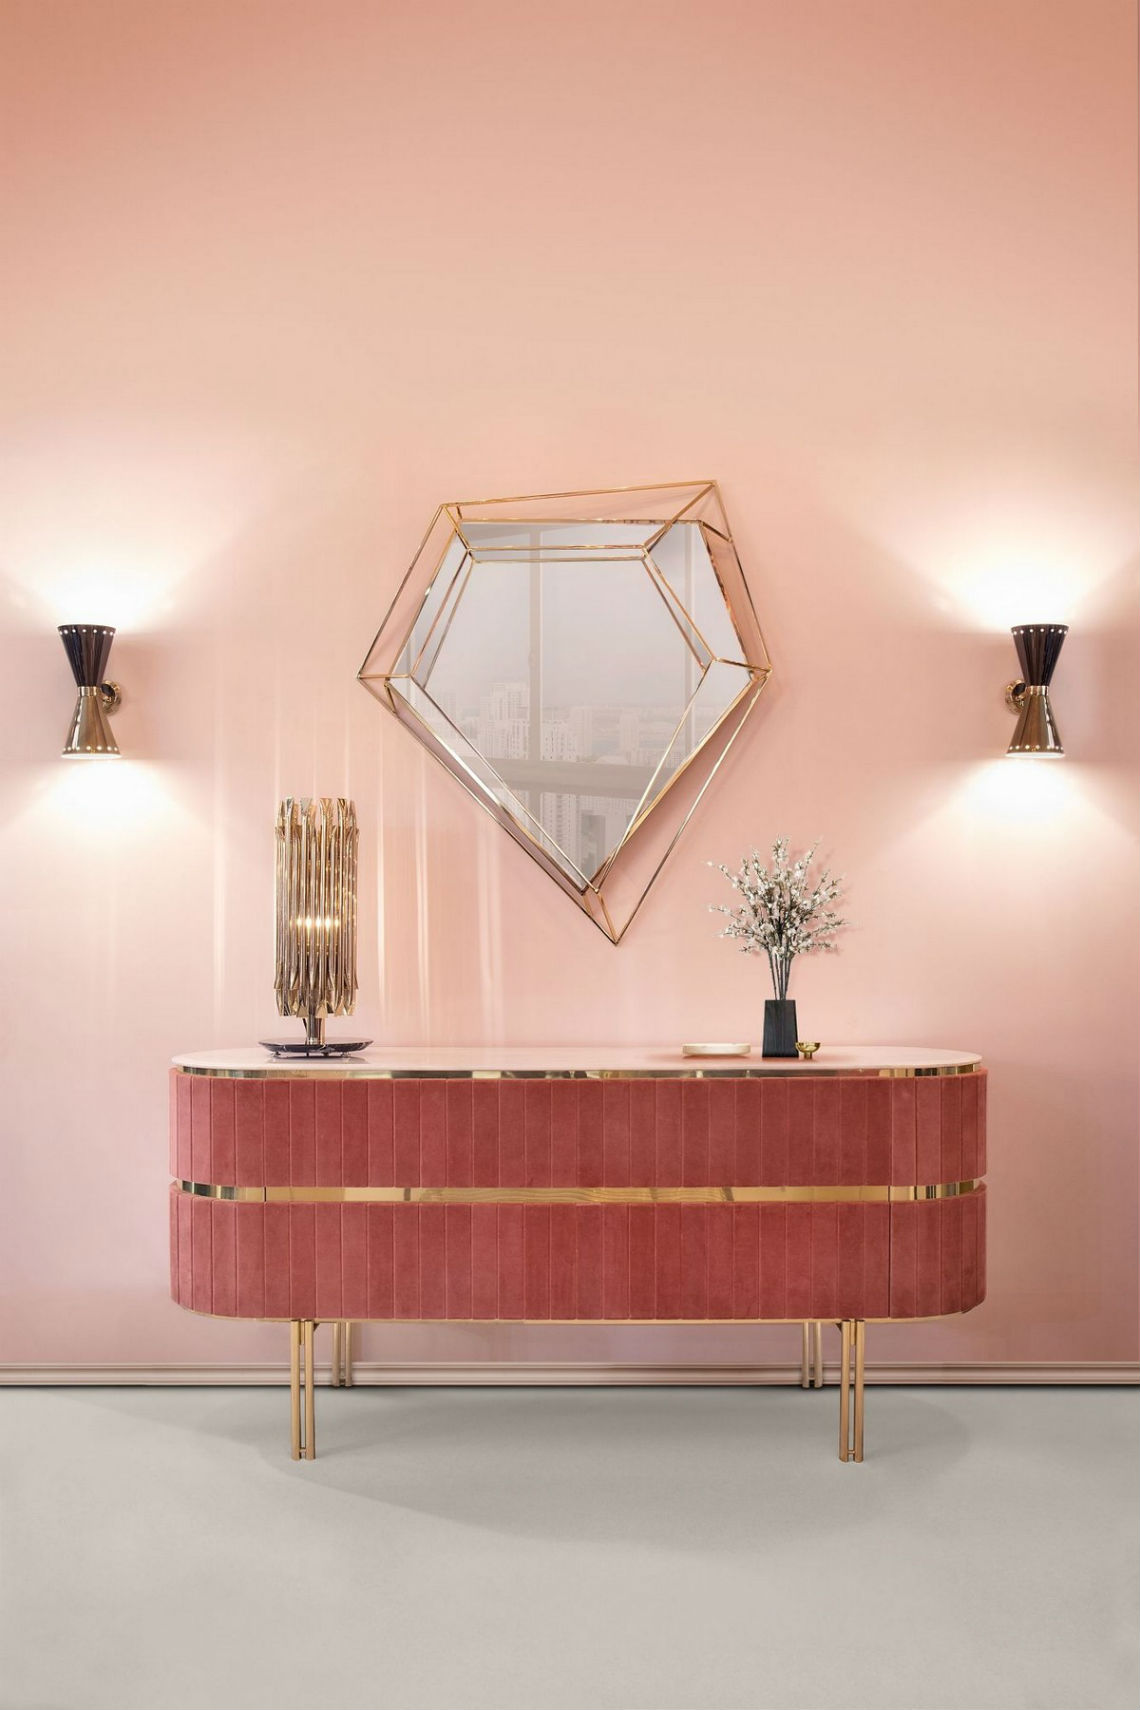 Modern Mirrors To Match Your Living Room Sideboard modern mirrors Modern Mirrors To Match Your Living Room Sideboard 2 5